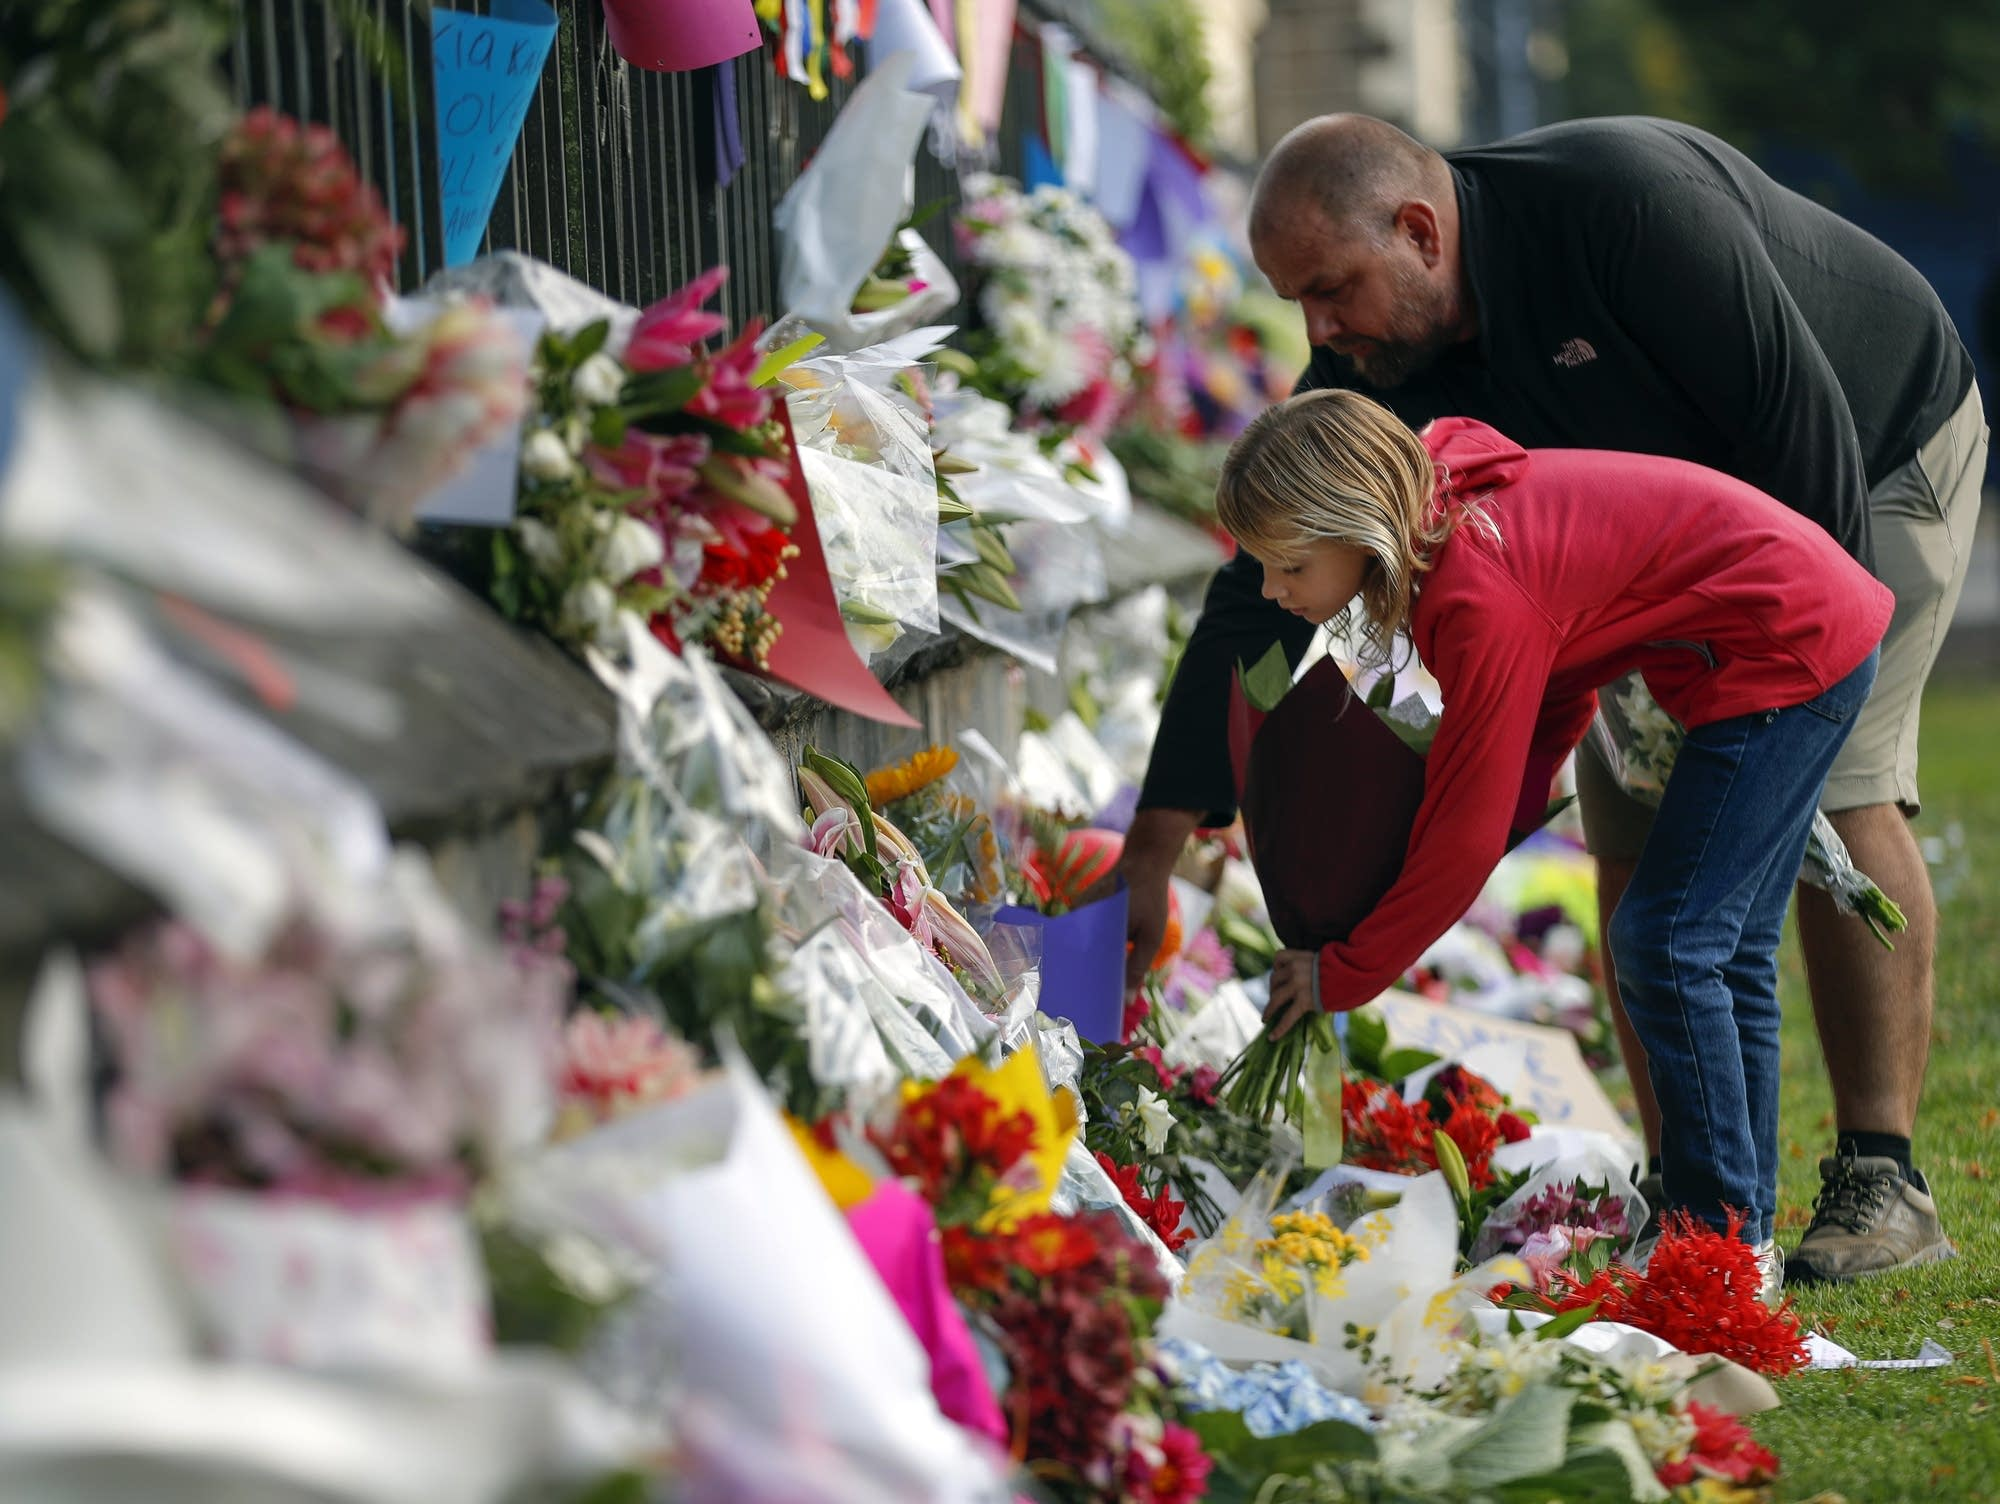 Mourners lay flowers on a wall in Christchurch, New Zealand